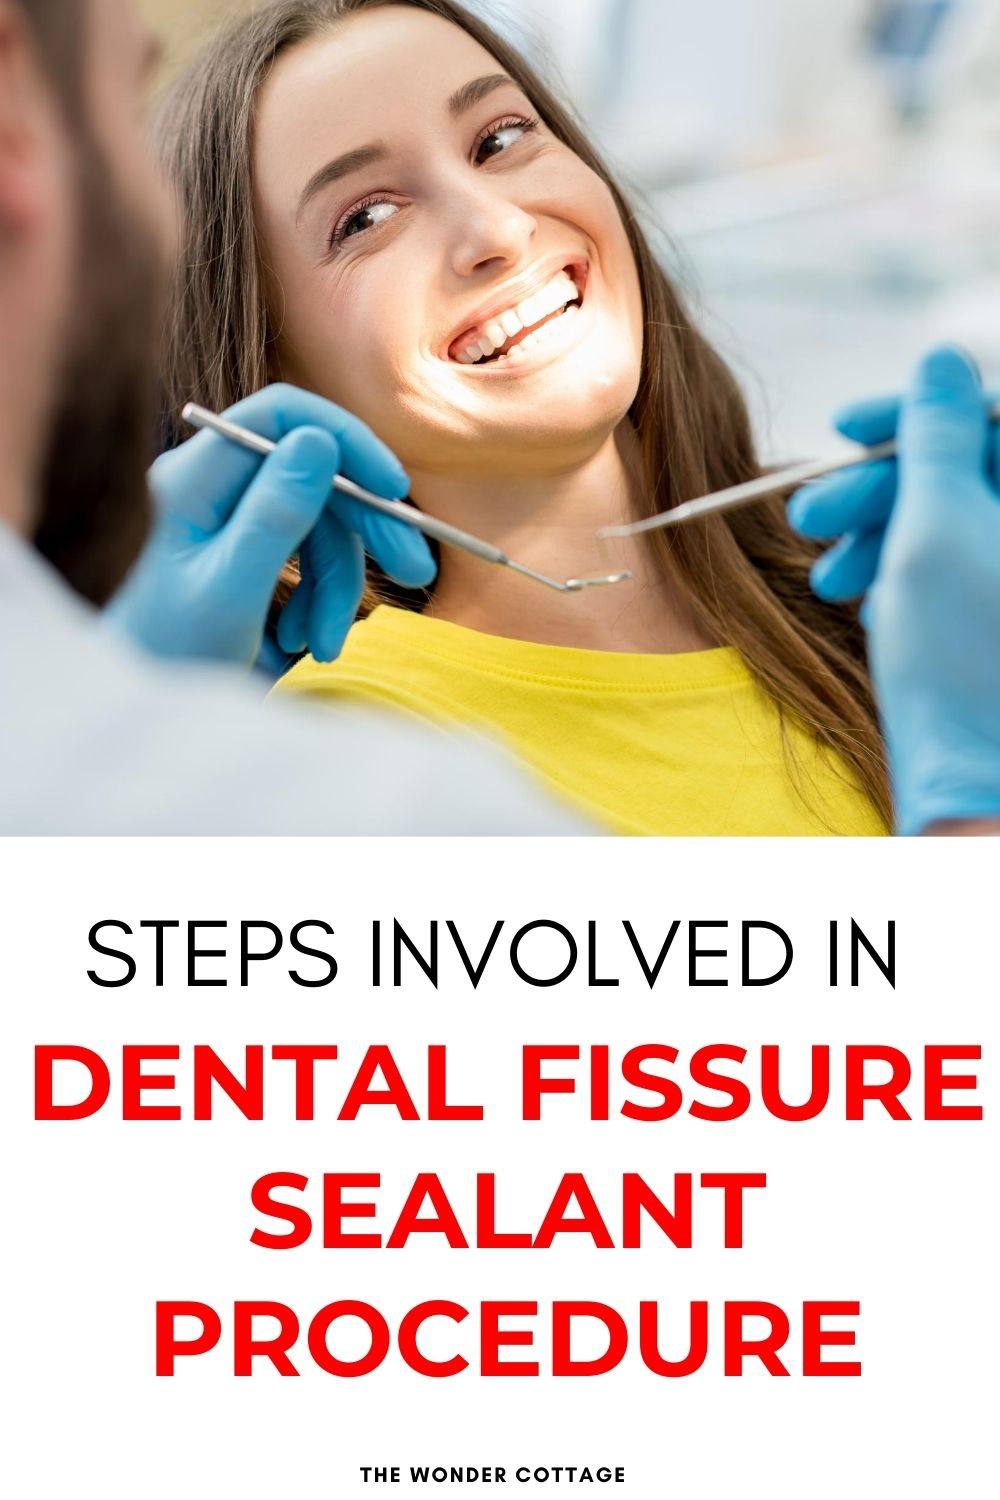 steps involved in dental fissure sealants